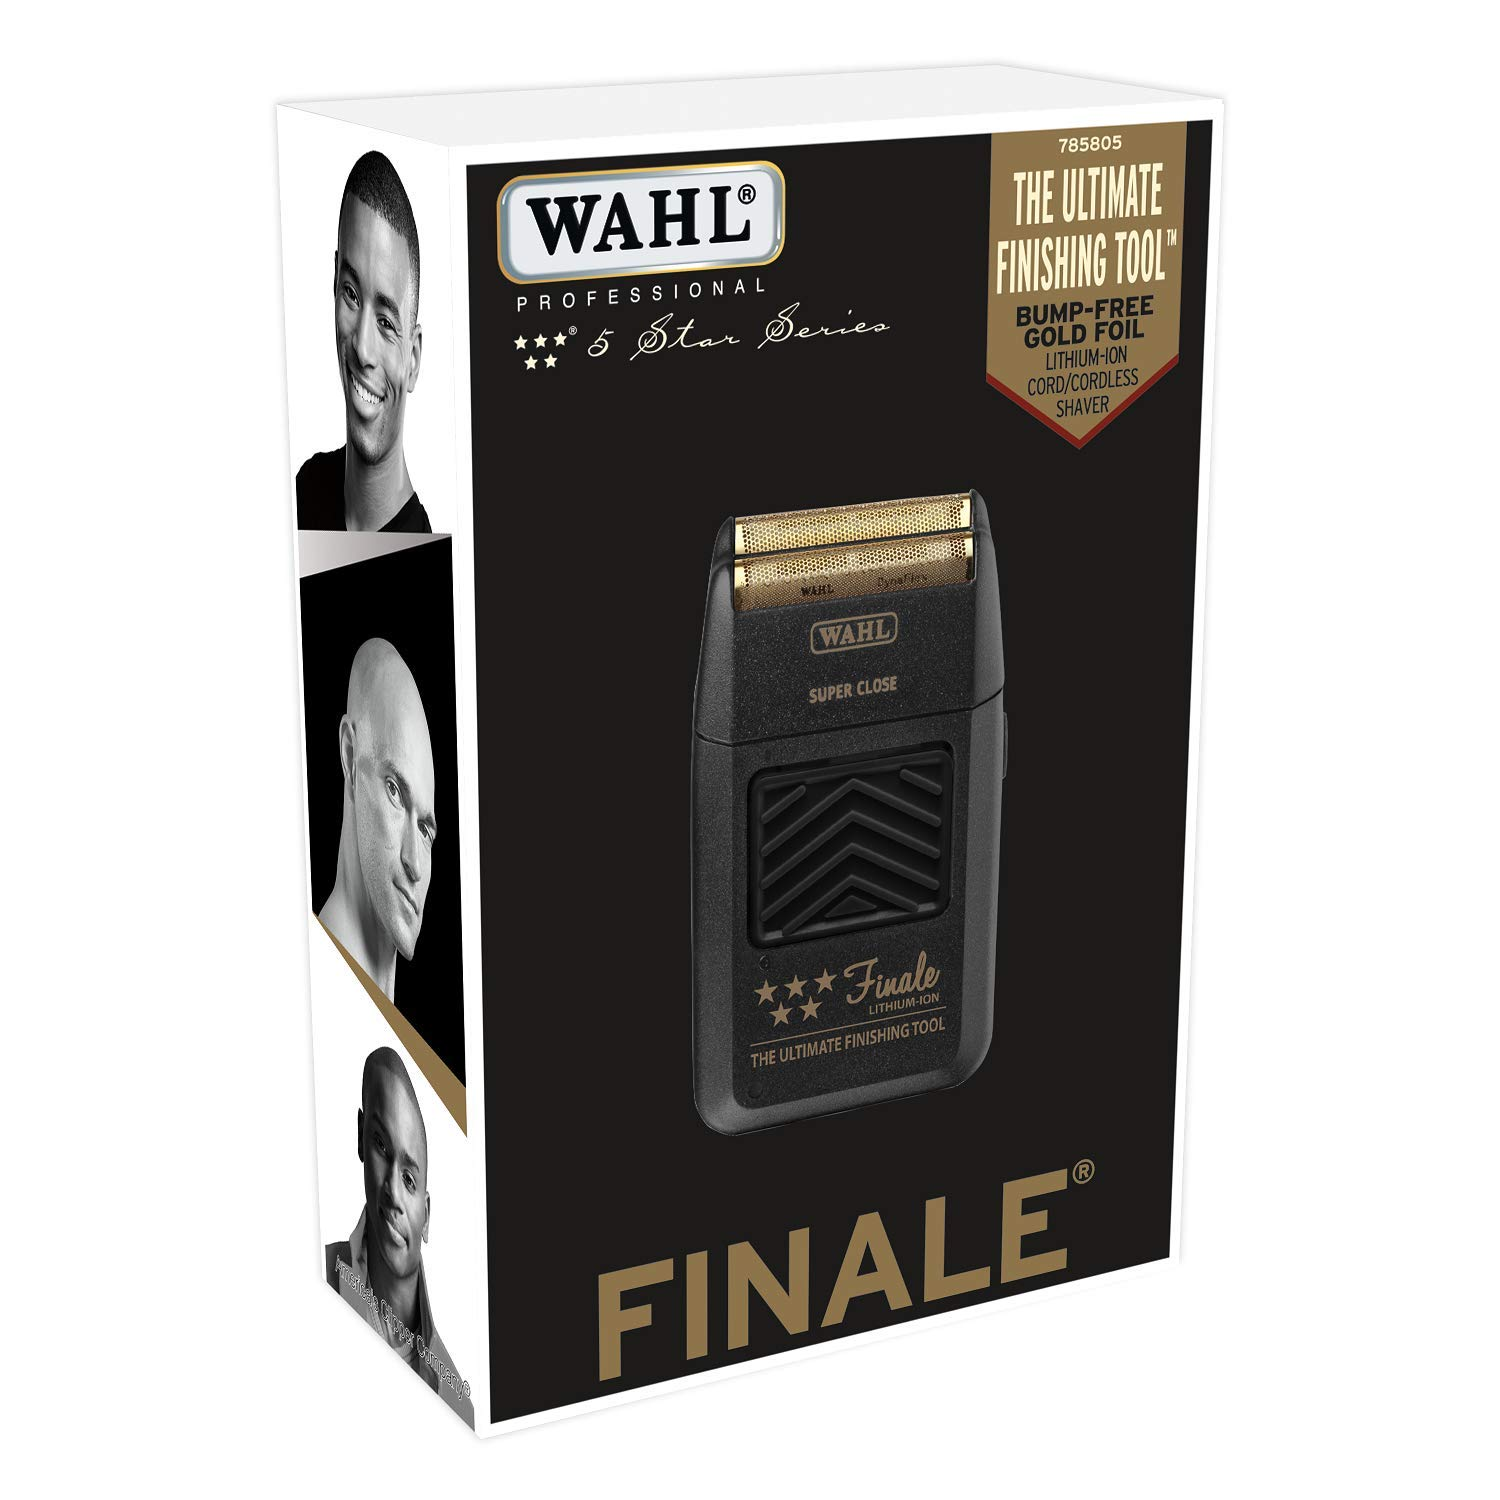 a140210c7 Amazon.com: Wahl Professional 5-Star Series Finale Finishing Tool #8164 -  Great for Professional Stylists and Barbers - Super Close - Black: Beauty